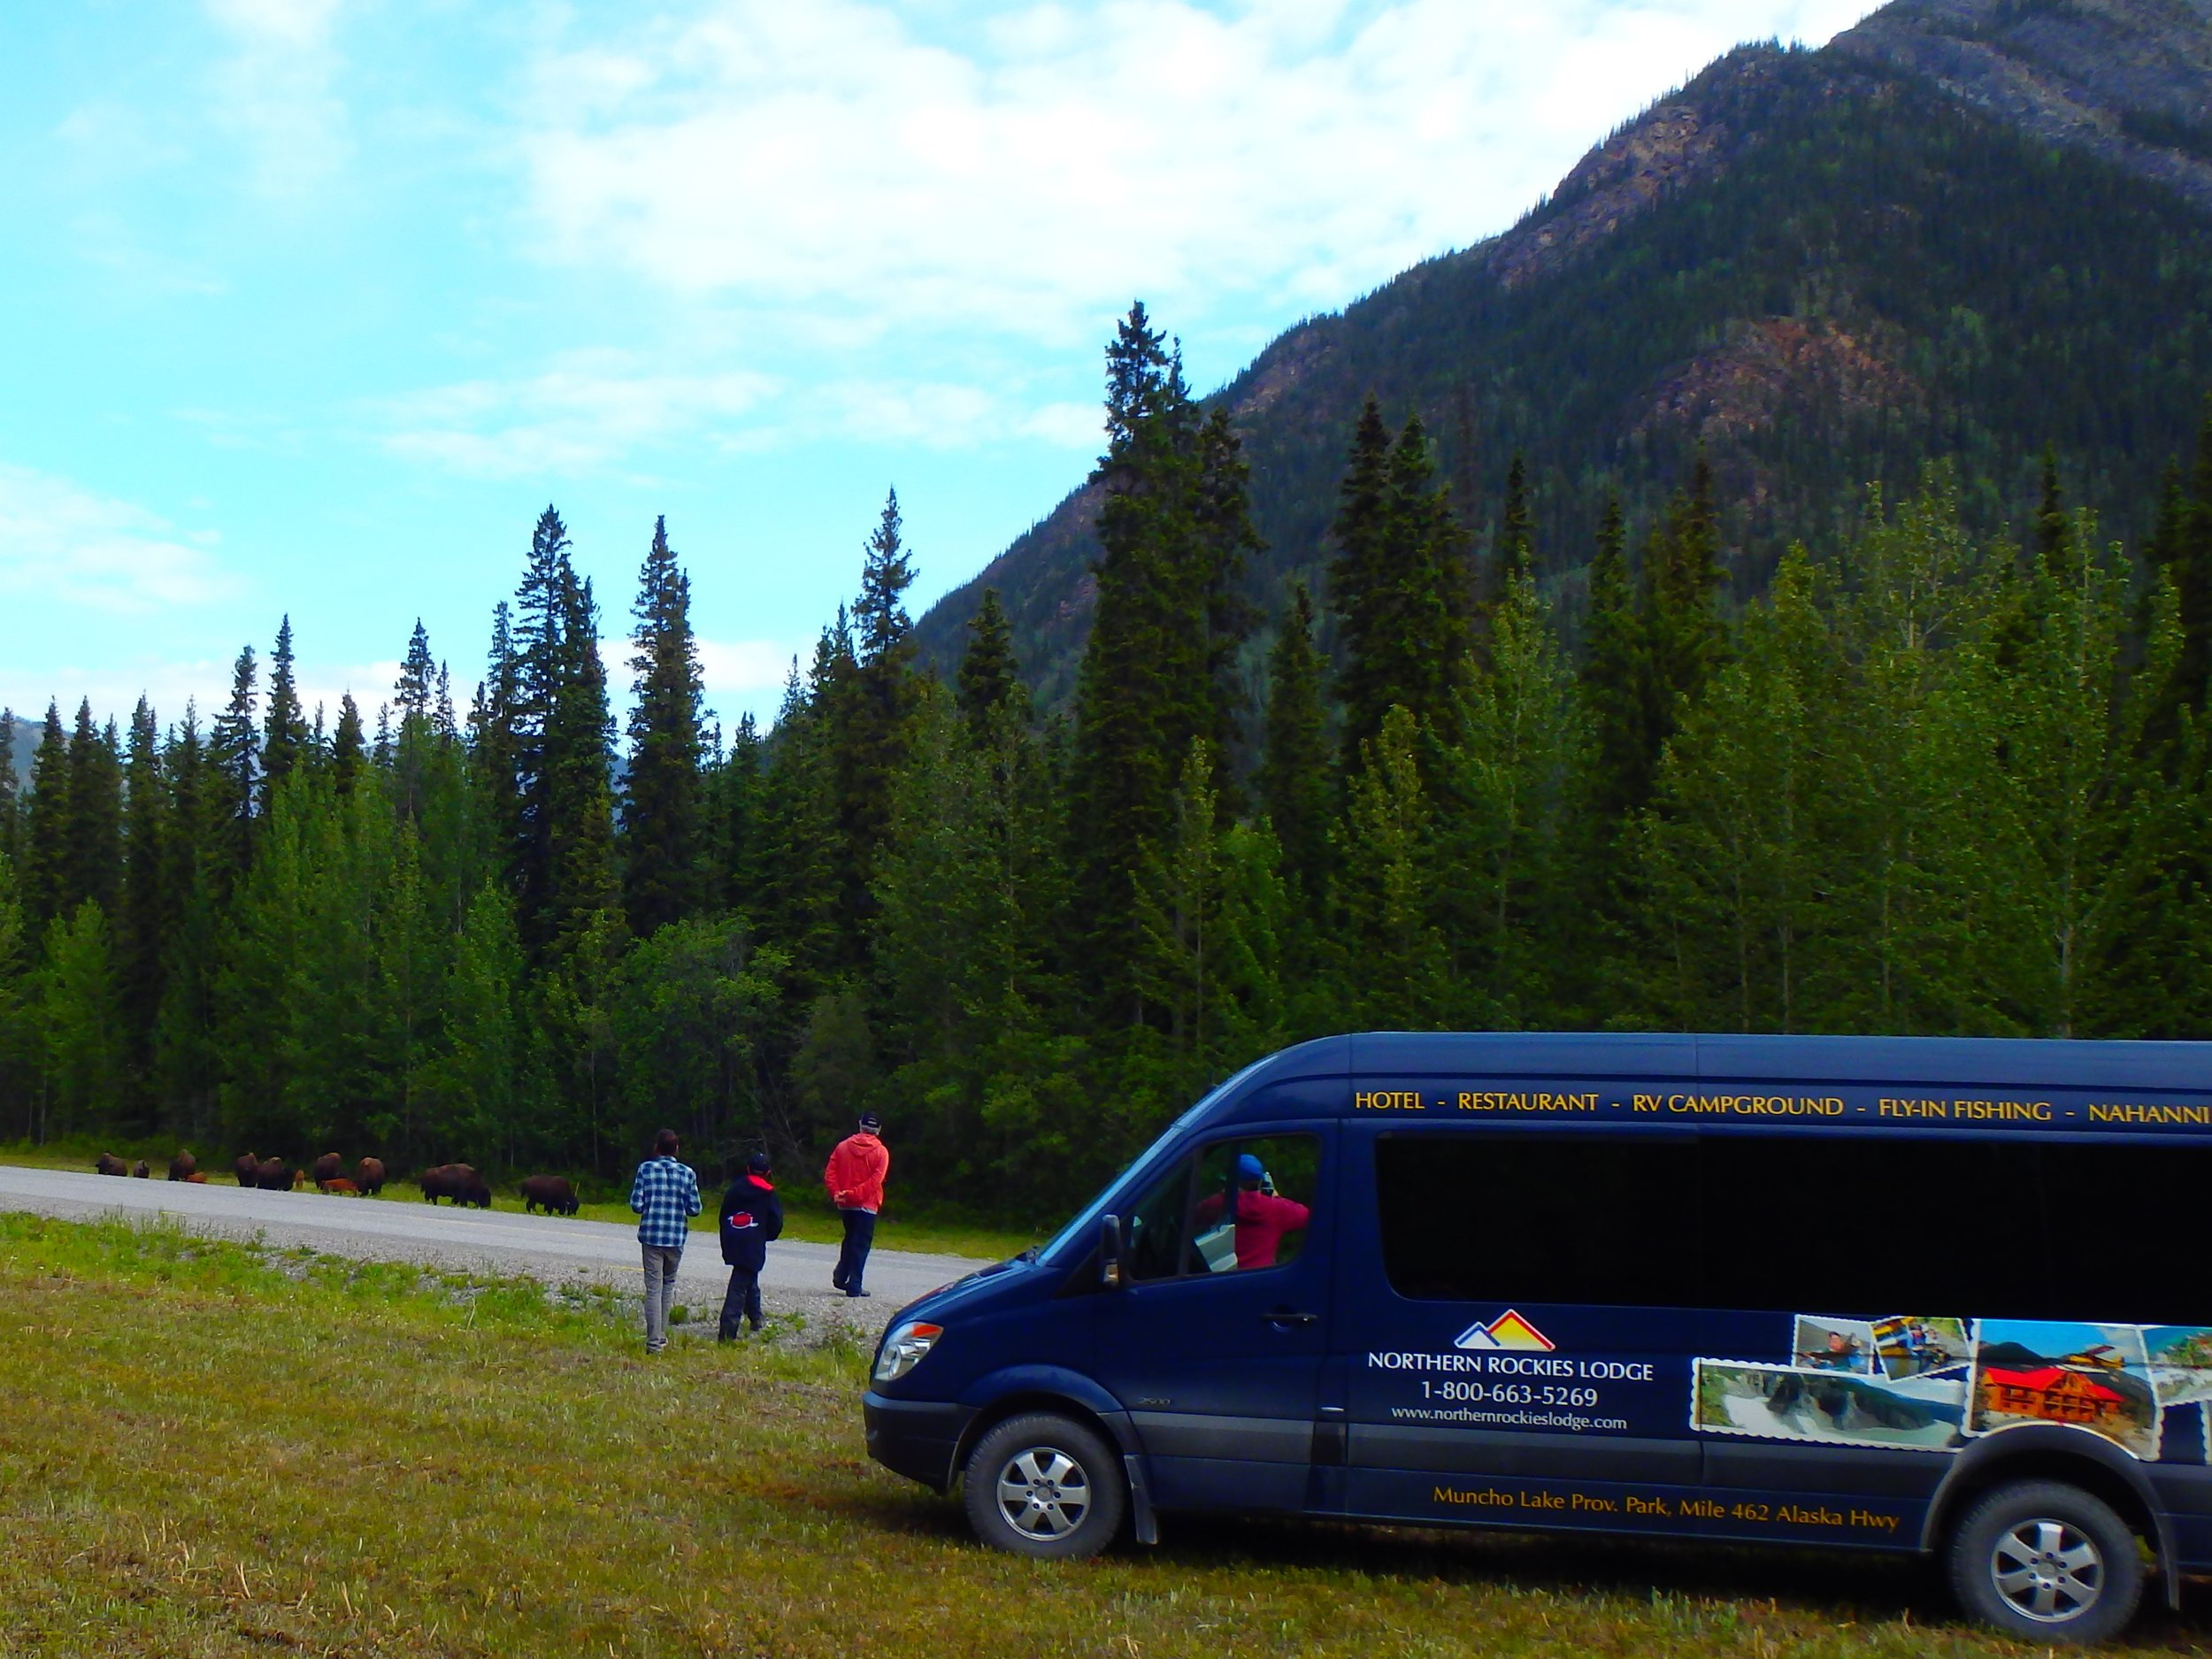 Mercedes Sprinter just outside the Liard River Hotsprings, guests viewing wild wood bison